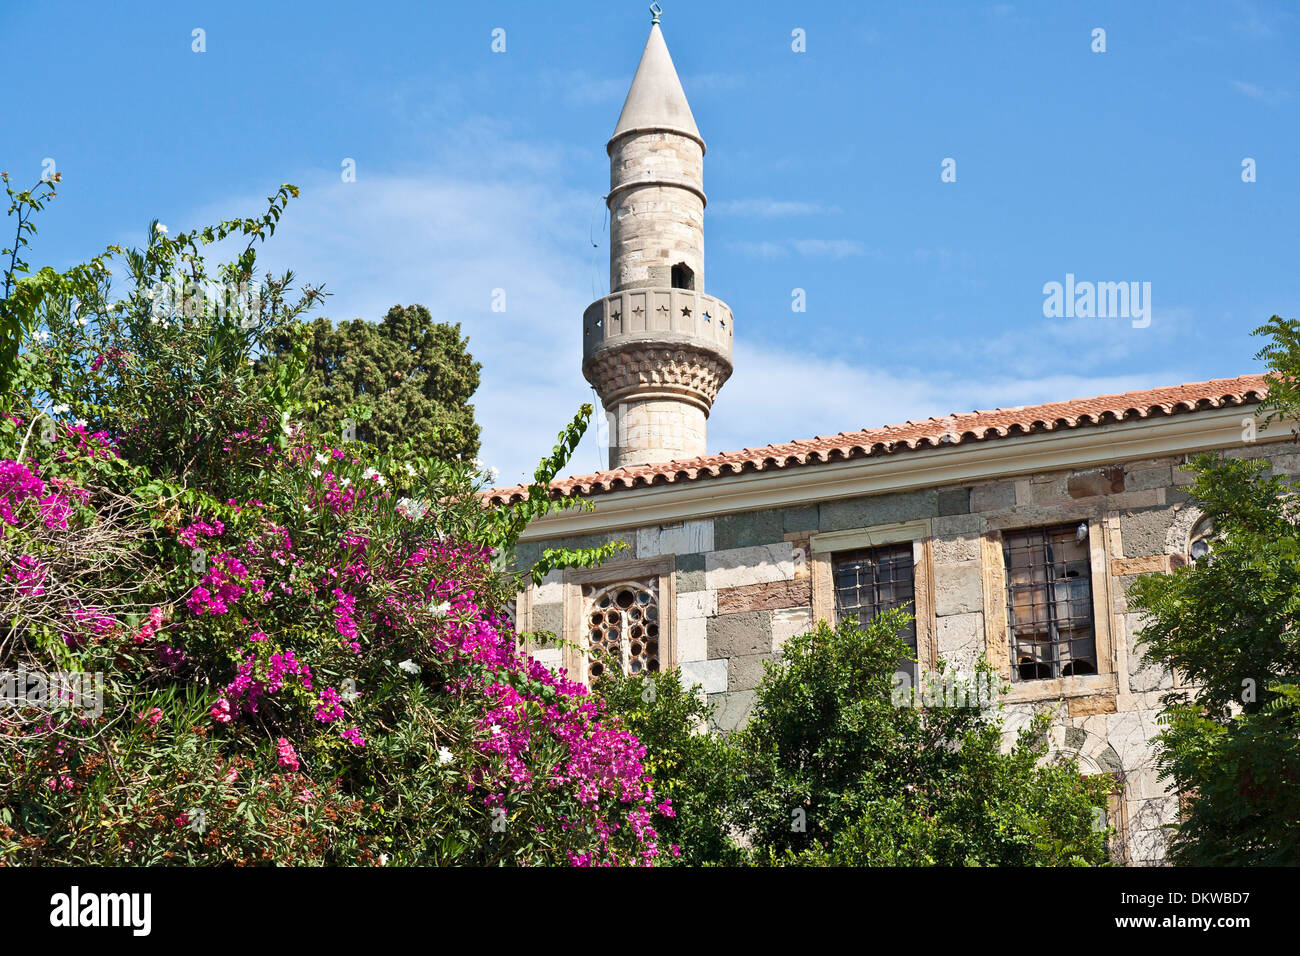 Kos Agora archeology excavation excavation site Greece Europe Hadij-Hassan mosque port island Islam Wall Walls Sea - Stock Image